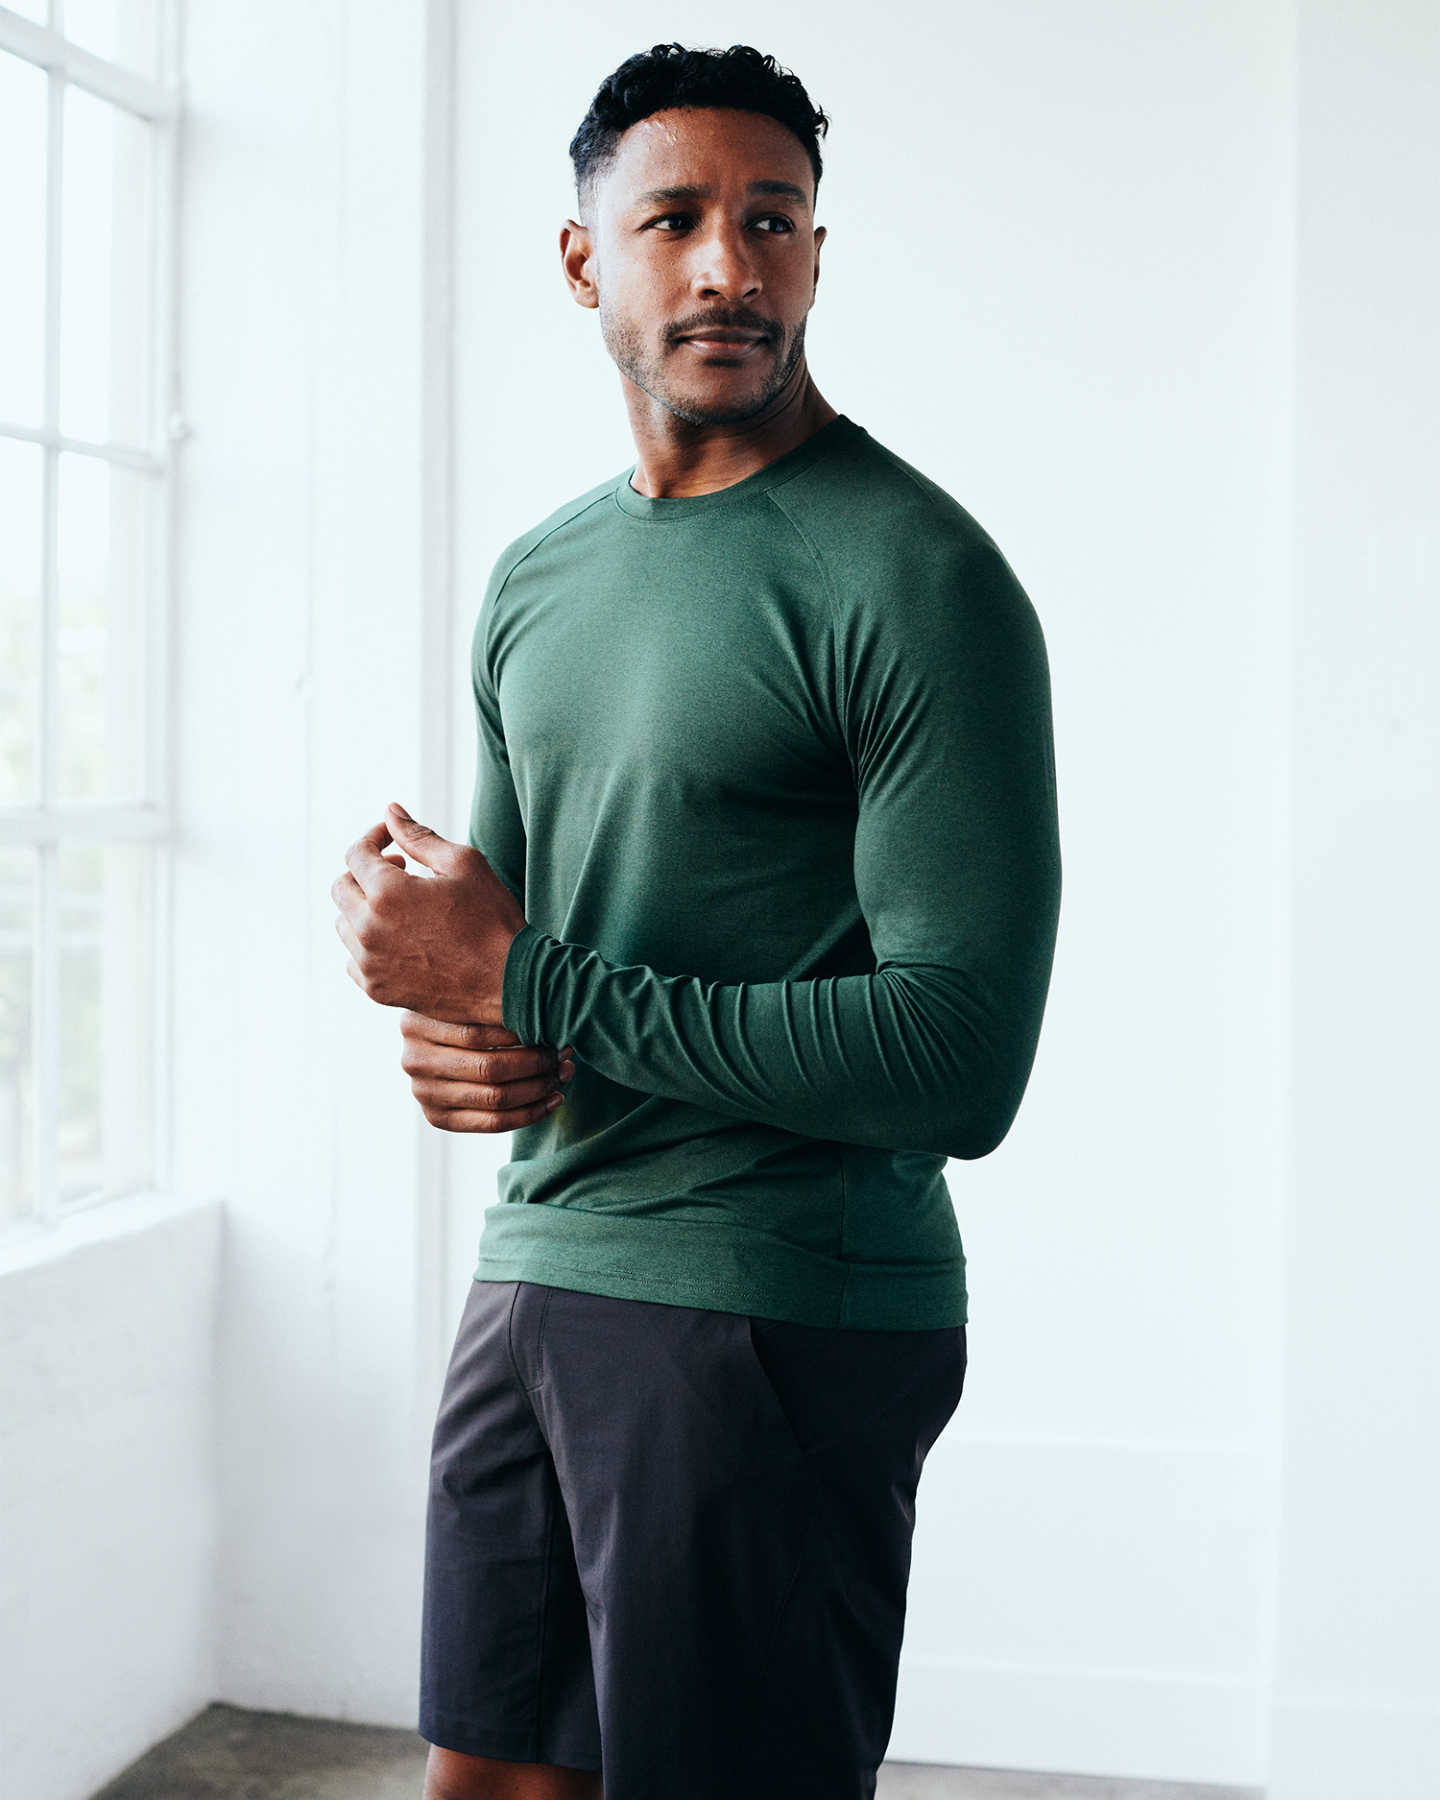 Flowknit Ultra-Soft Performance Long Sleeve Tee - Olive - 3